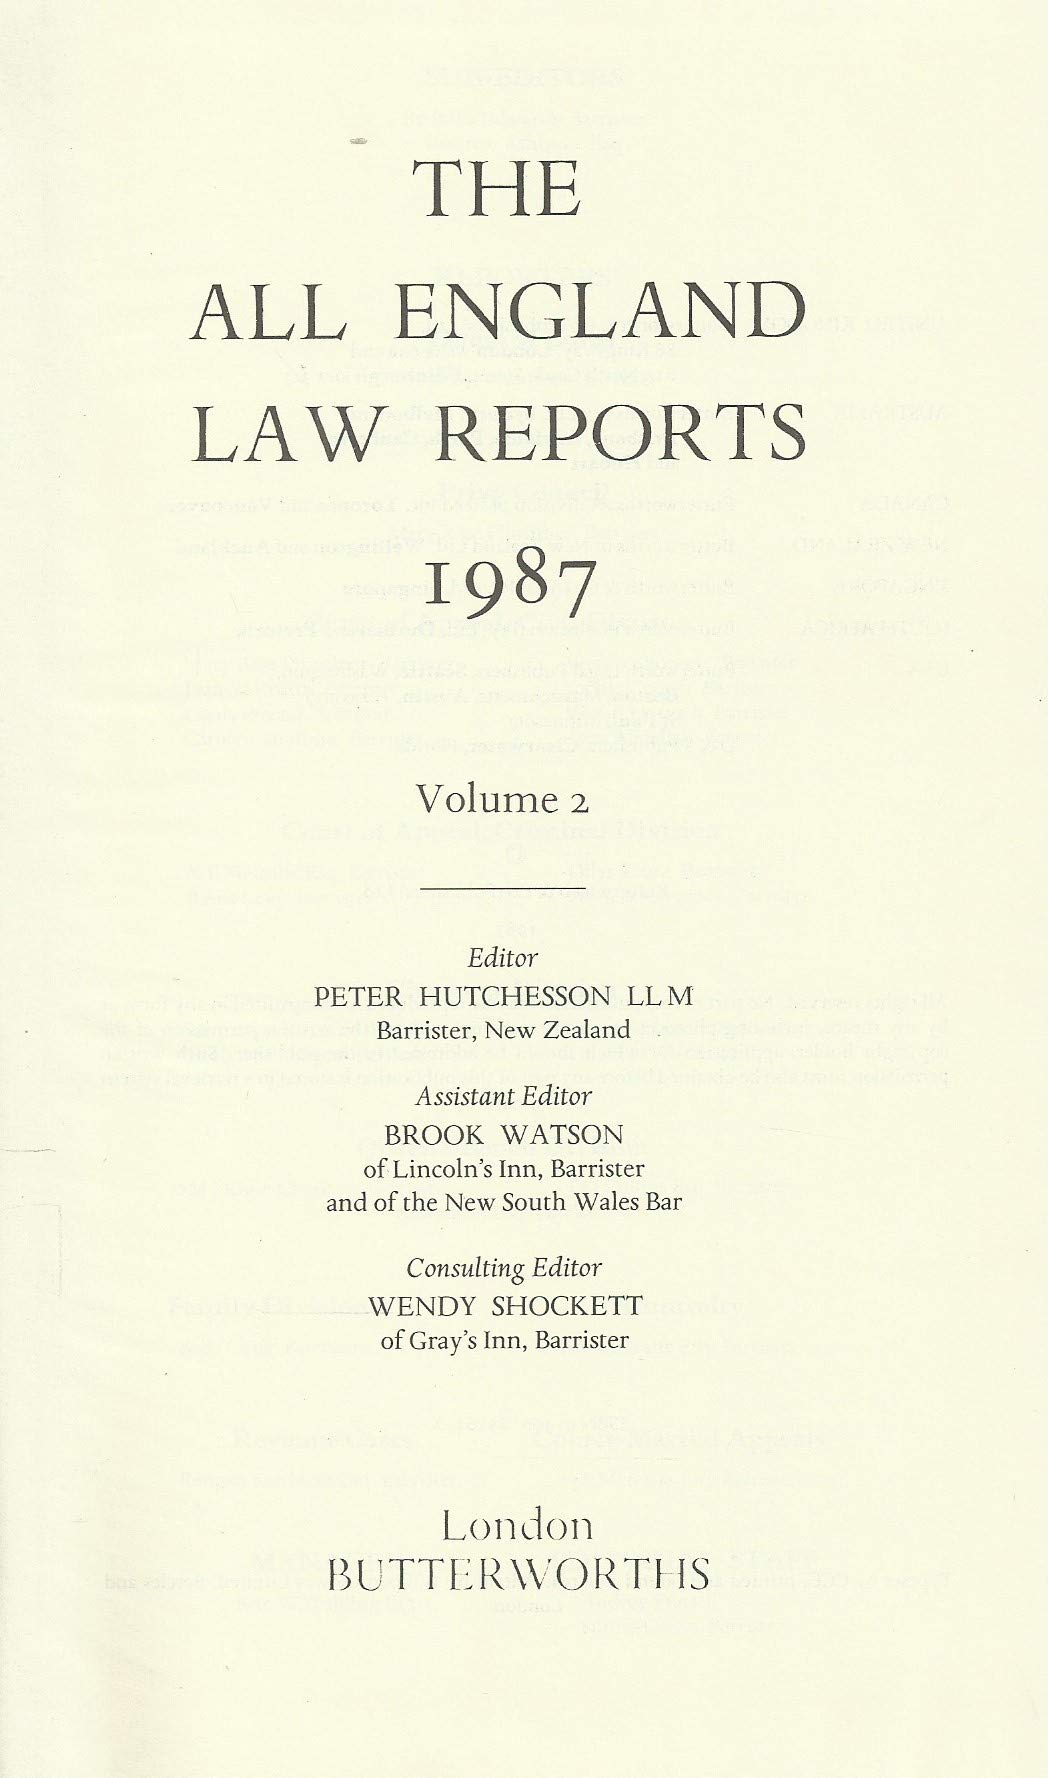 The All England Law Reports: 1987 Vol 2